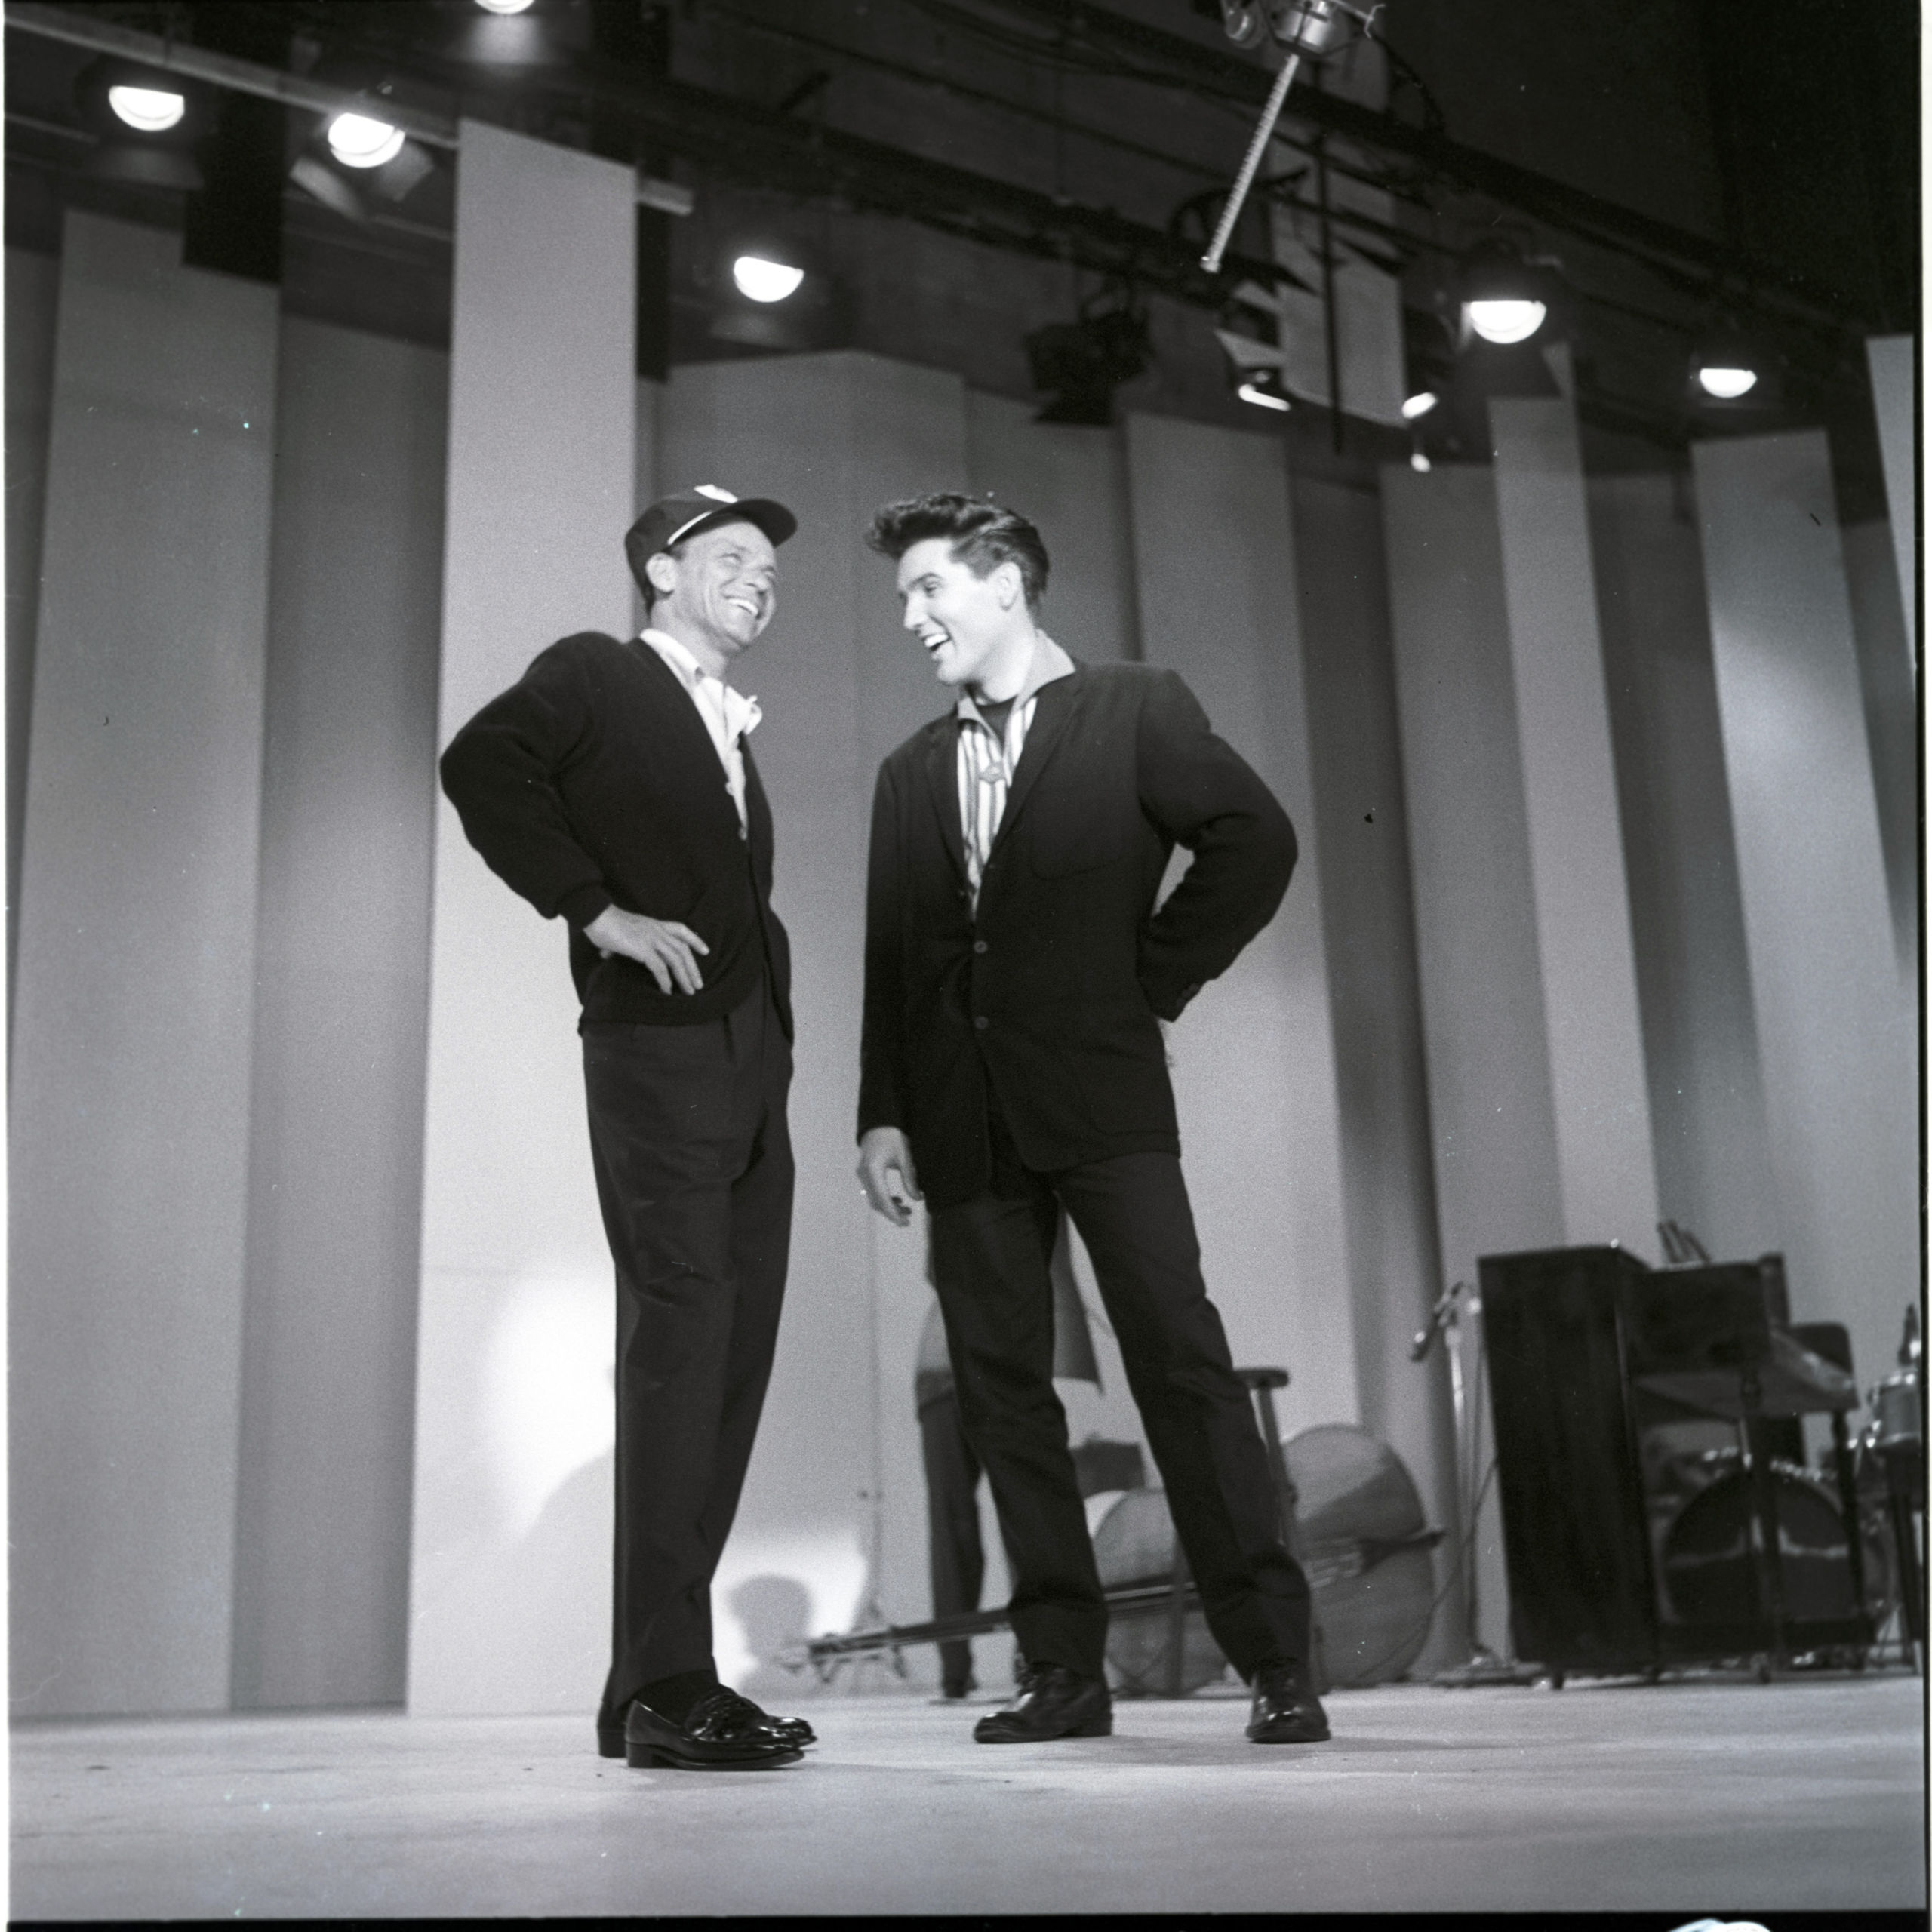 THE FRANK SINATRA SHOW - Airdate: May 12, 1960. L-R: Frank Sinatra, Elvis Presley (Photo by ABC Photo Archives/ABC via Getty Images)  The Marvelous Music History of Miami Beach's Fontainebleau